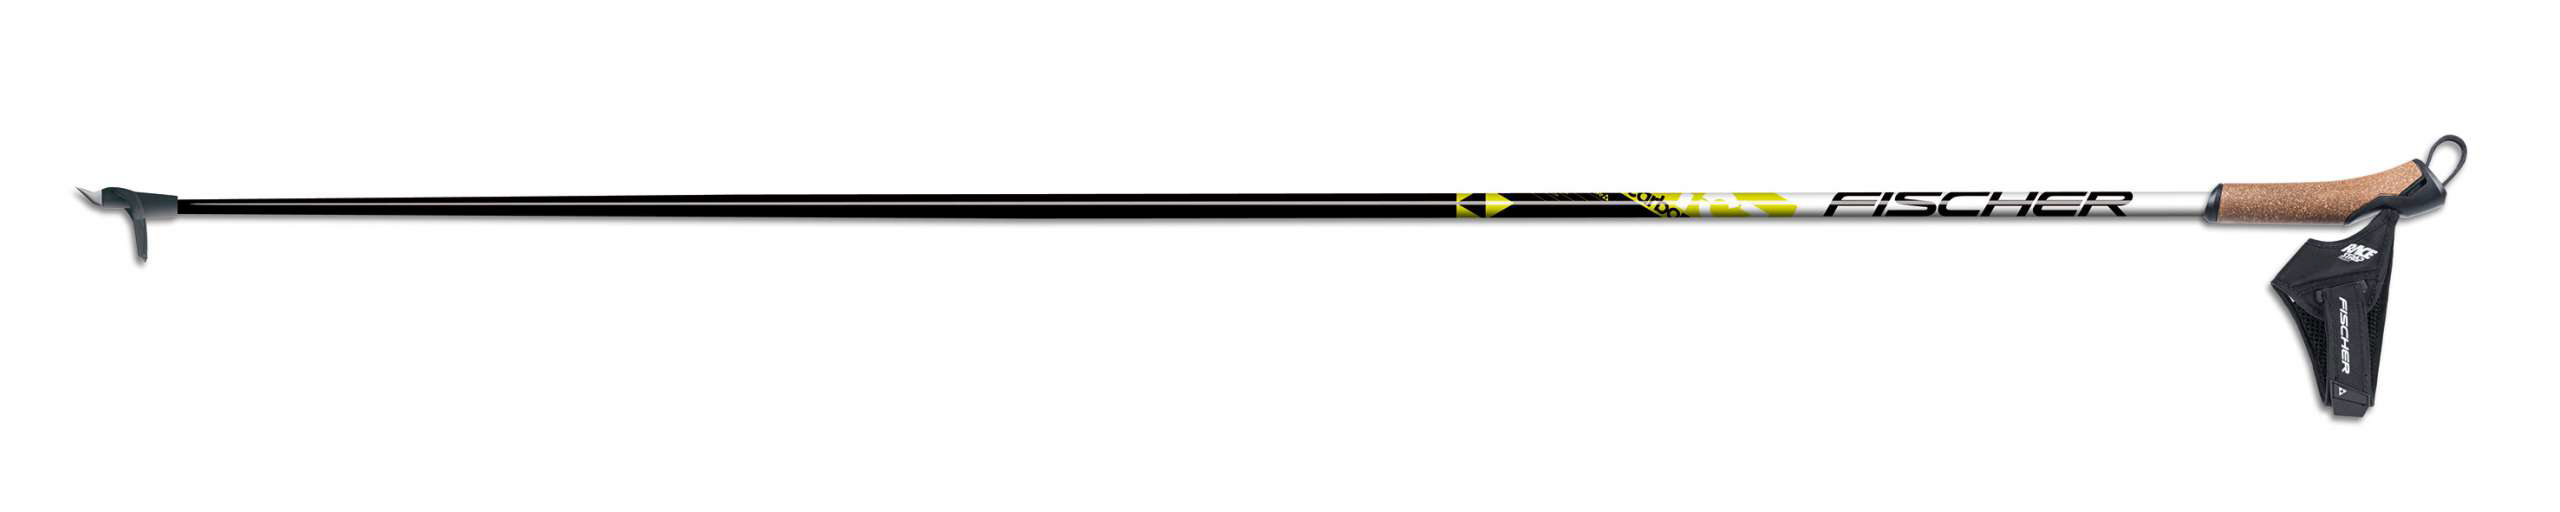 Demo Cross Country Ski Pole Fischer RC3 Carbon Image